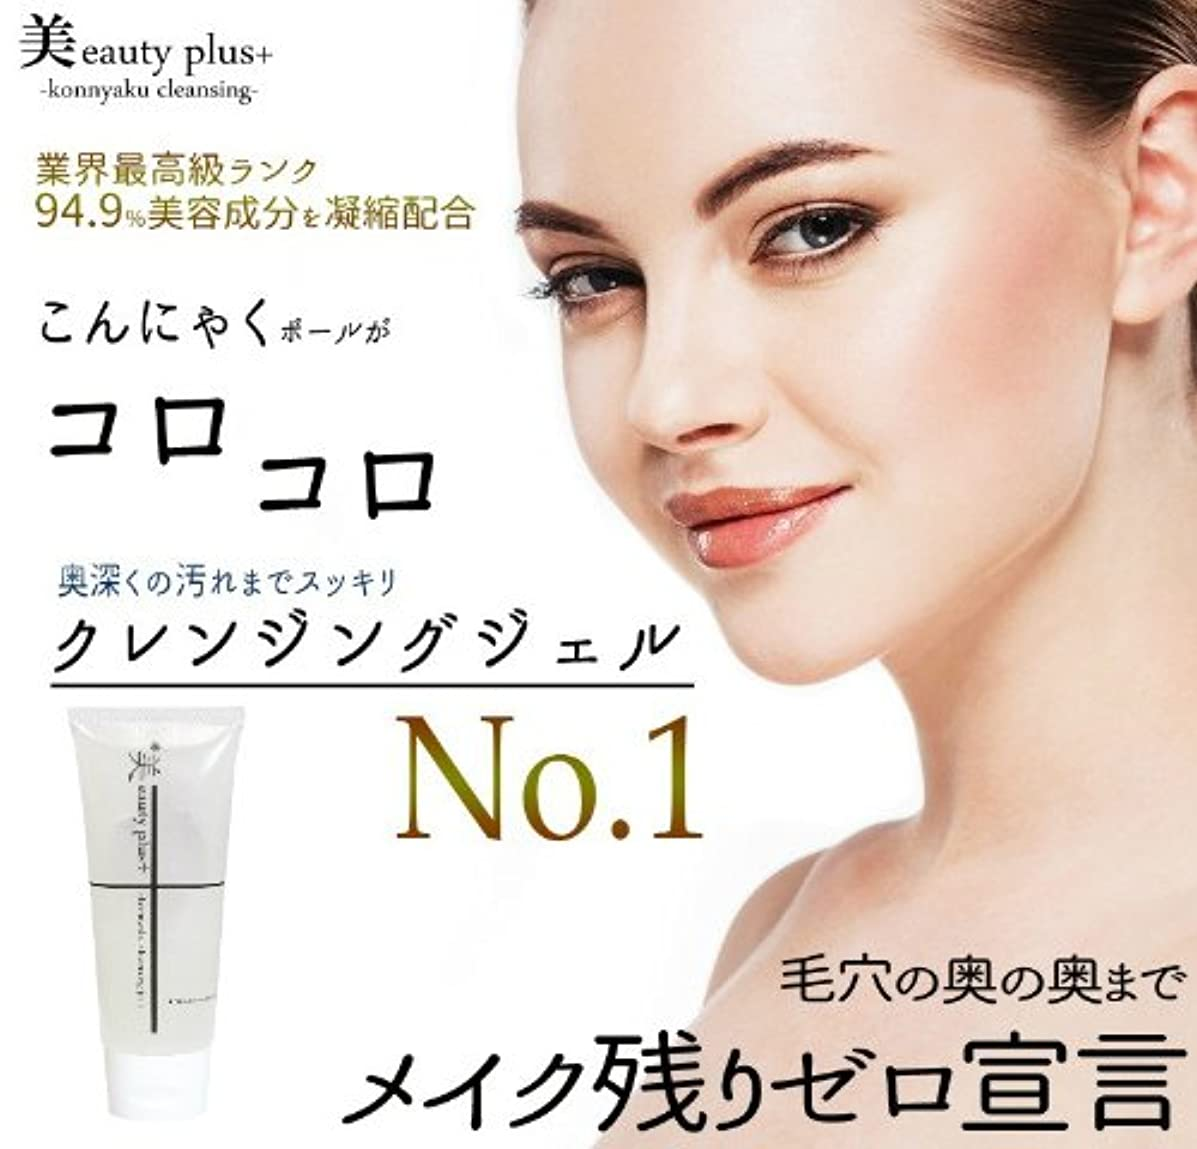 コンピューターロバ子犬美eauty Plus+ Konnyaku Cleansing Jel